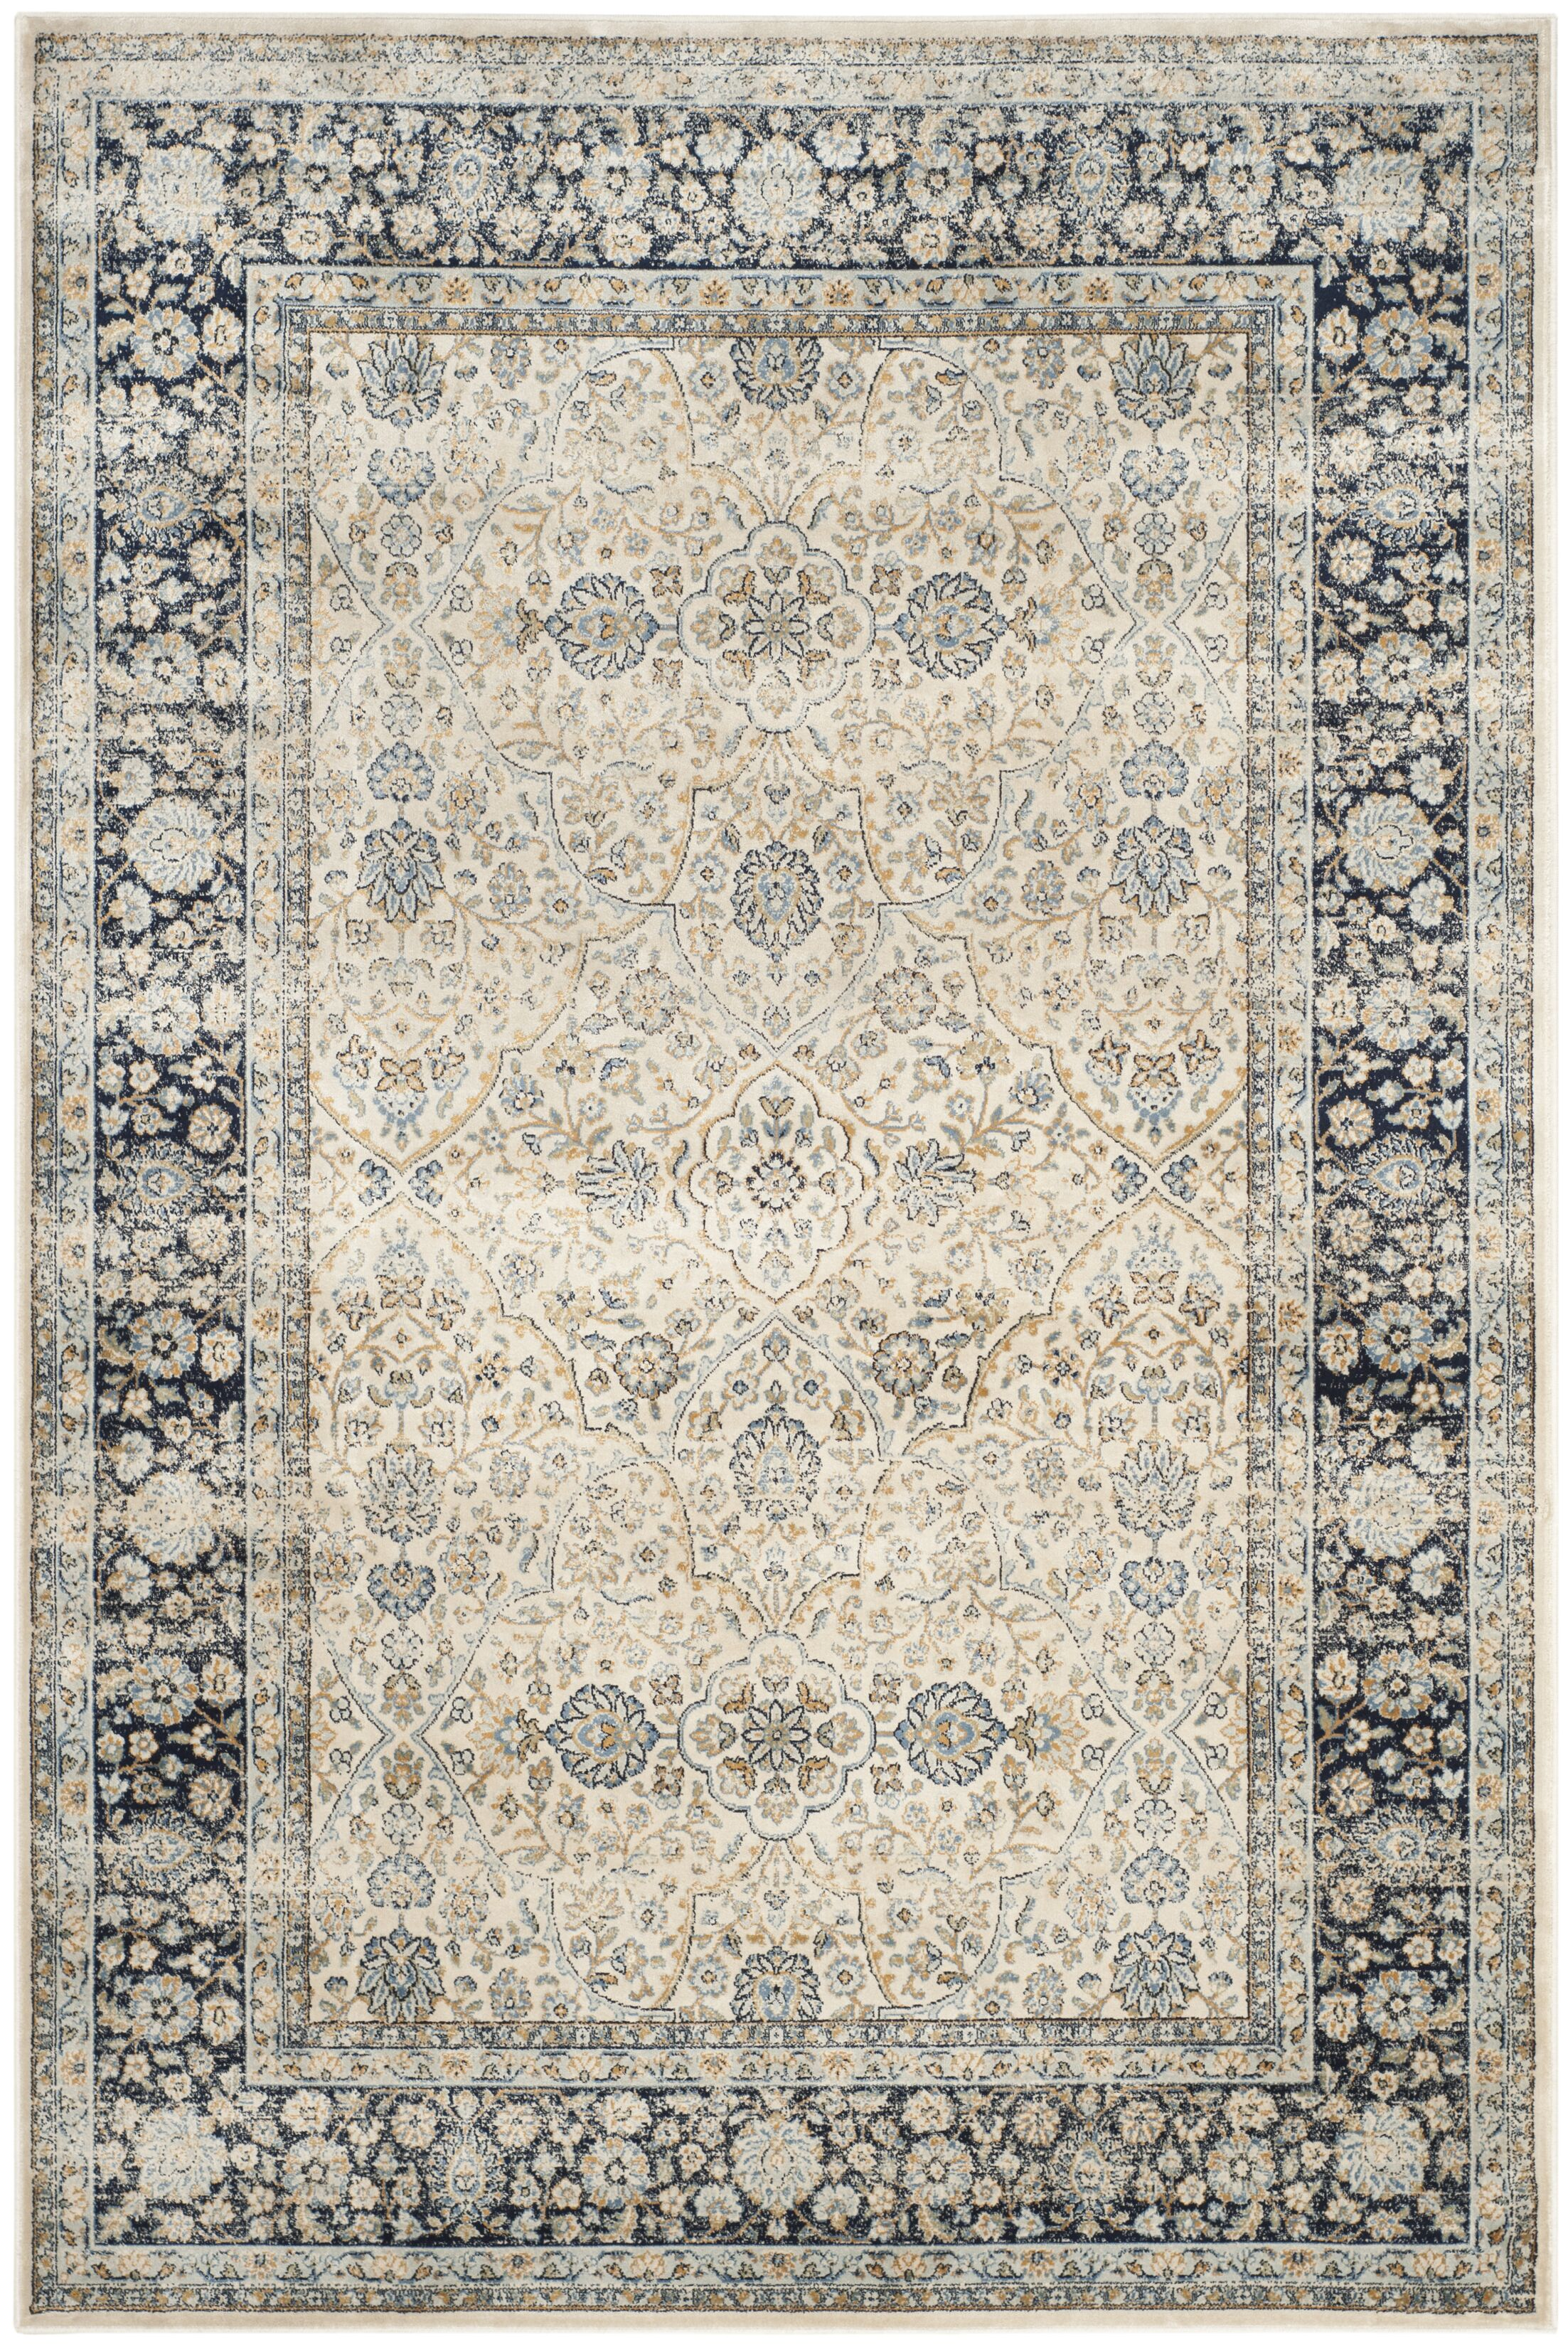 Persian Garden Vintage Ivory/Navy Area Rug Rug Size: Rectangle 5'3